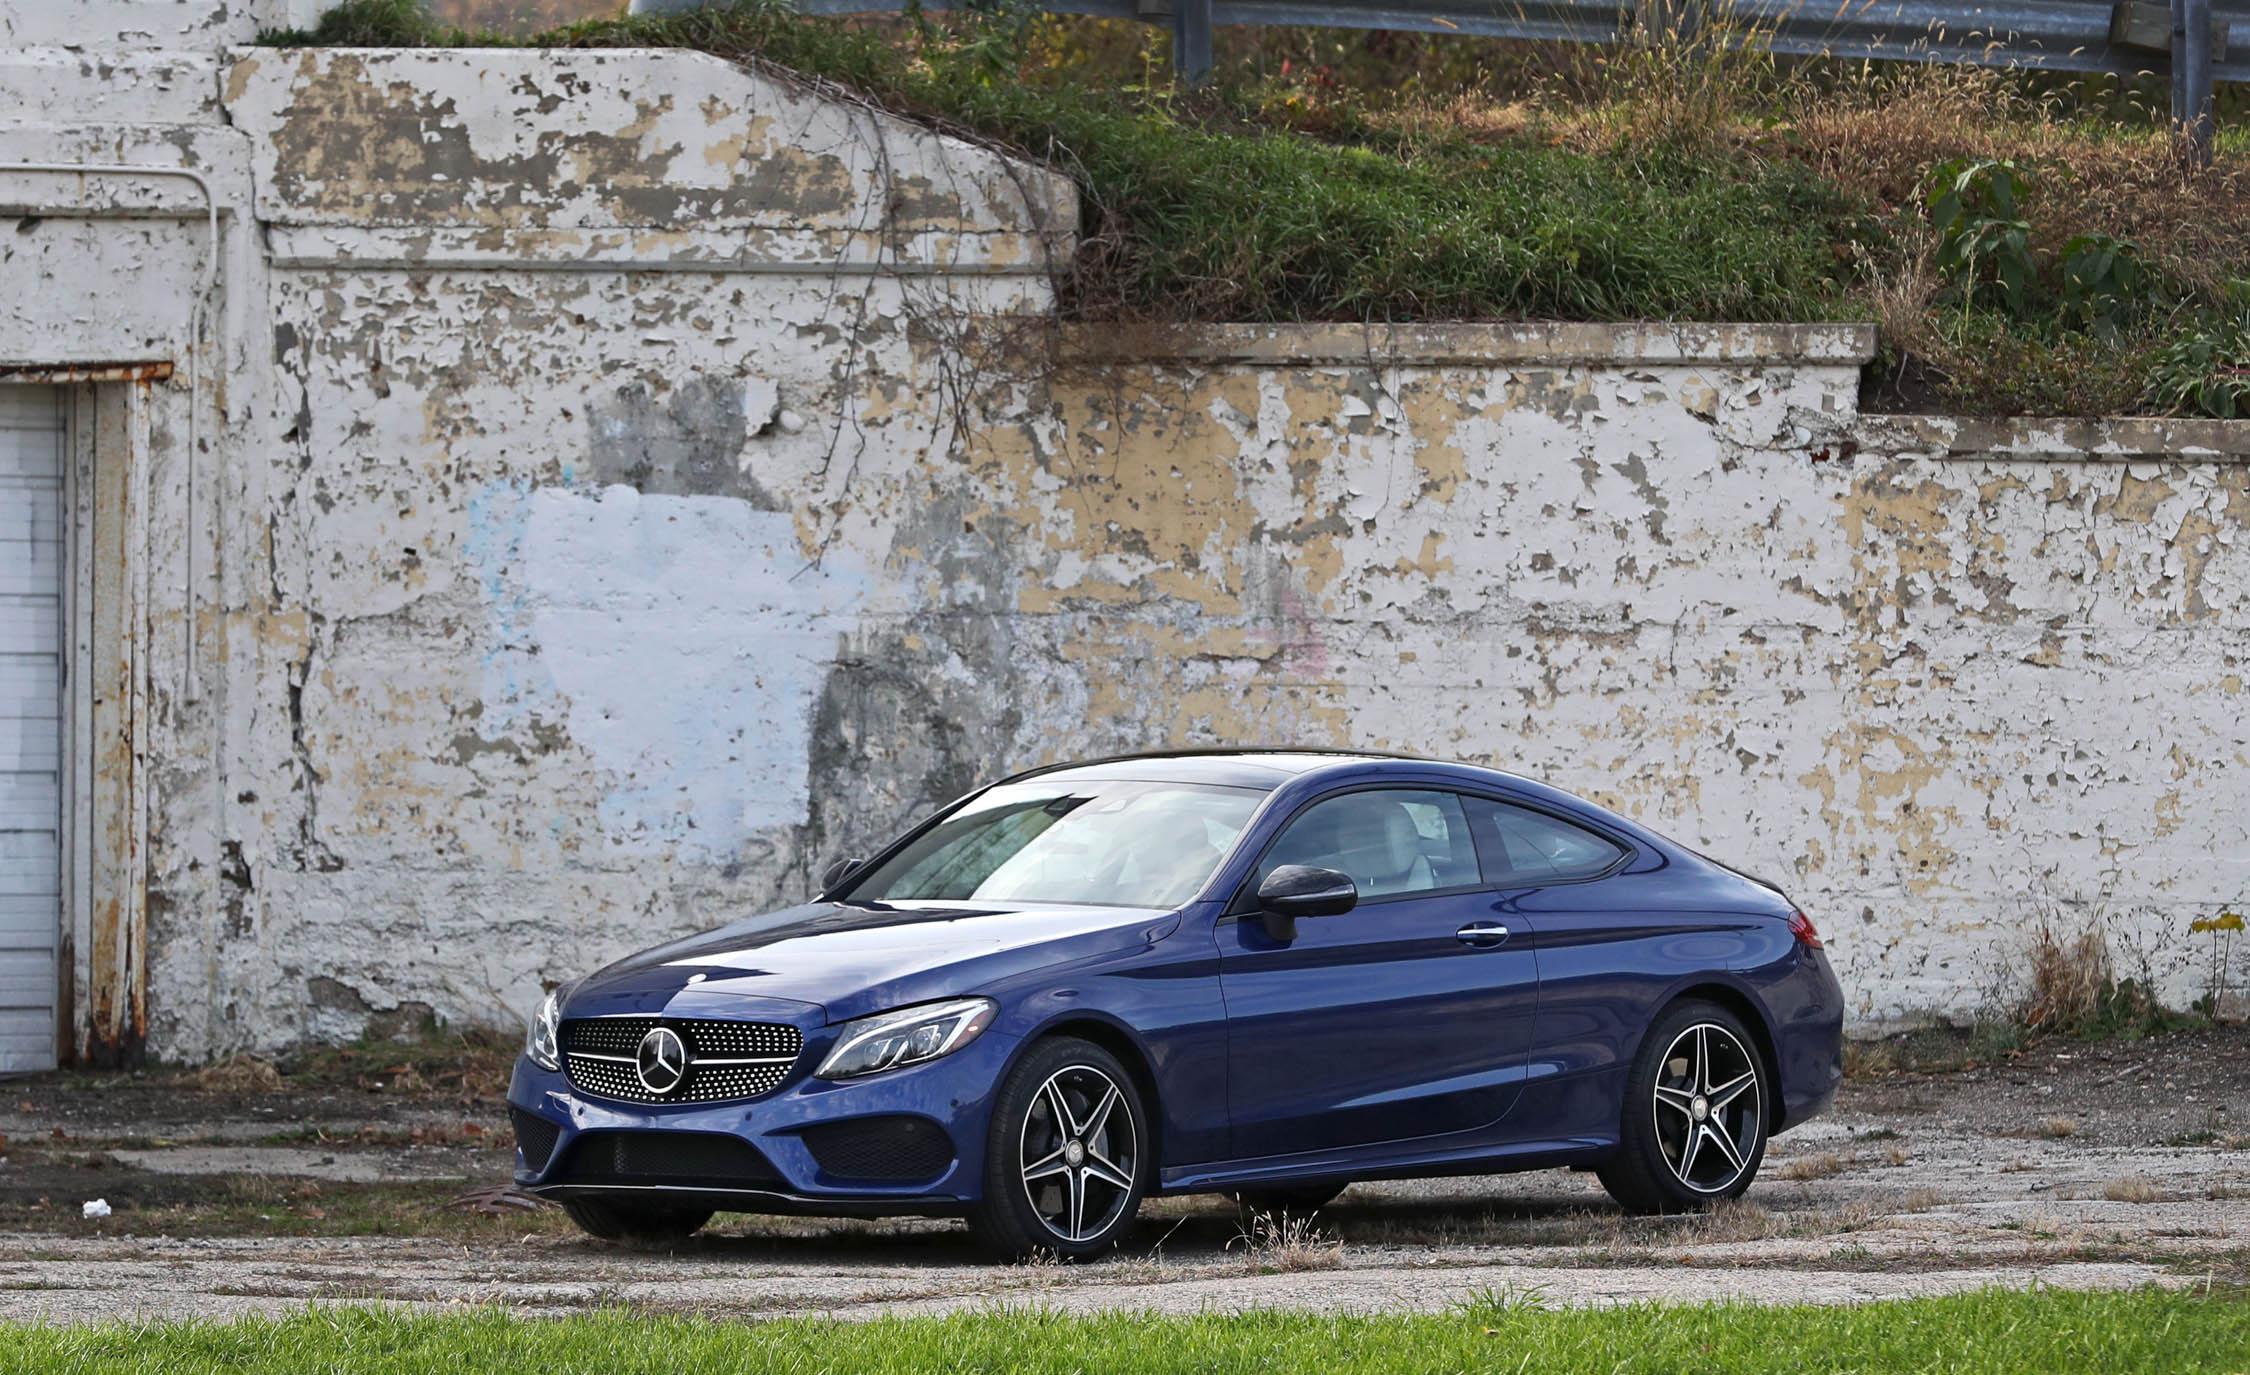 2017 Mercedes Benz C300 4MATIC Coupe Exterior (View 21 of 44)